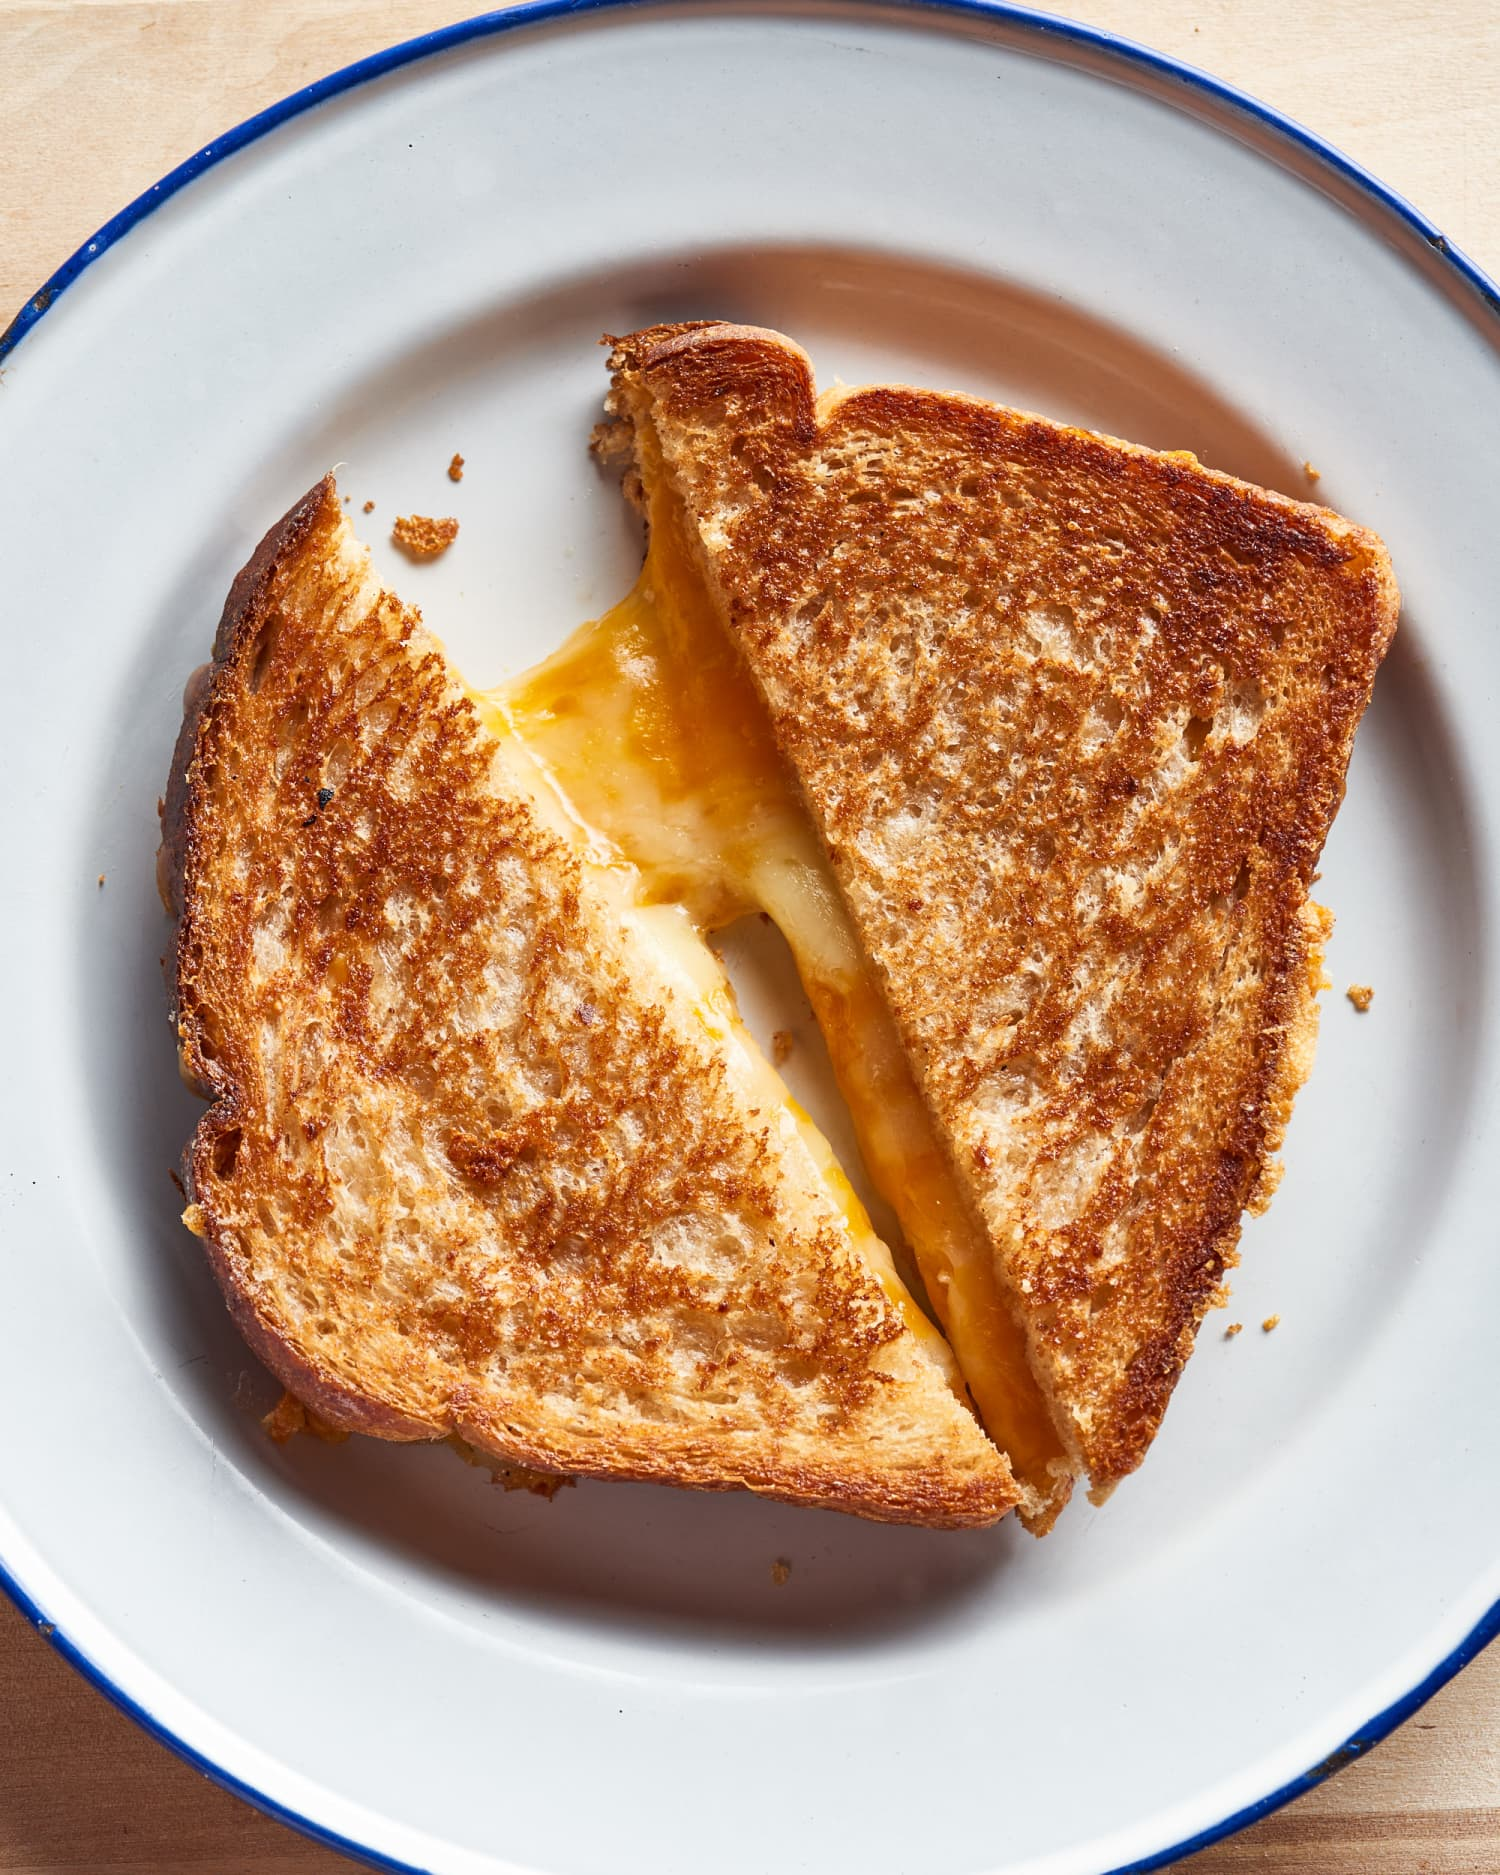 Air Fryer Grilled Cheese Sandwiches Are Golden, Gooey, and Absolutely Foolproof